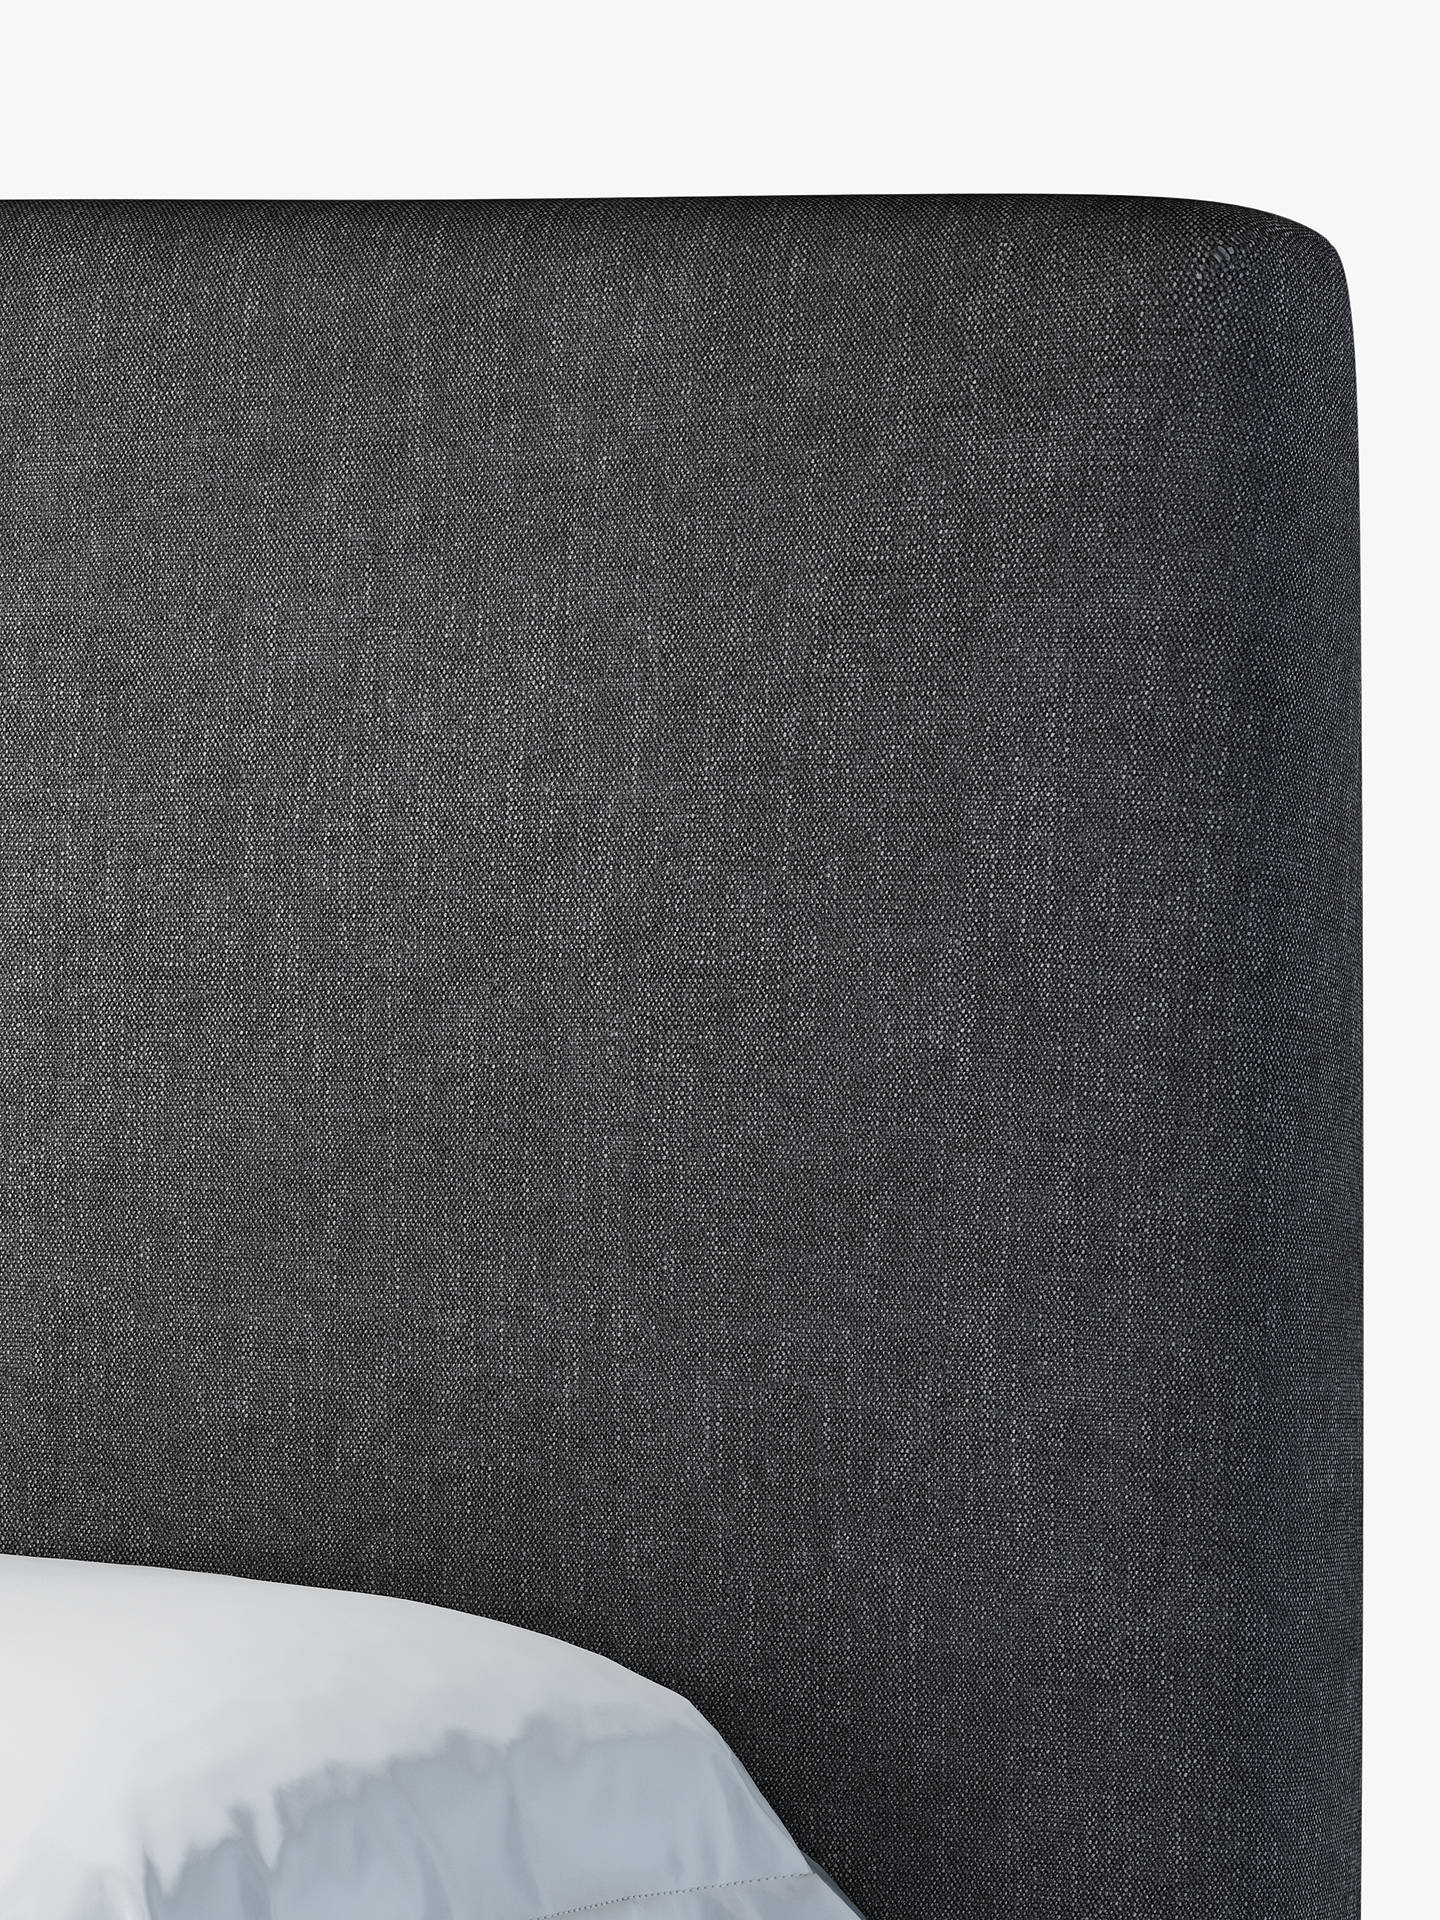 Buy John Lewis & Partners Emily Ottoman Storage Upholstered Bed Frame, Double, Erin Charcoal Online at johnlewis.com